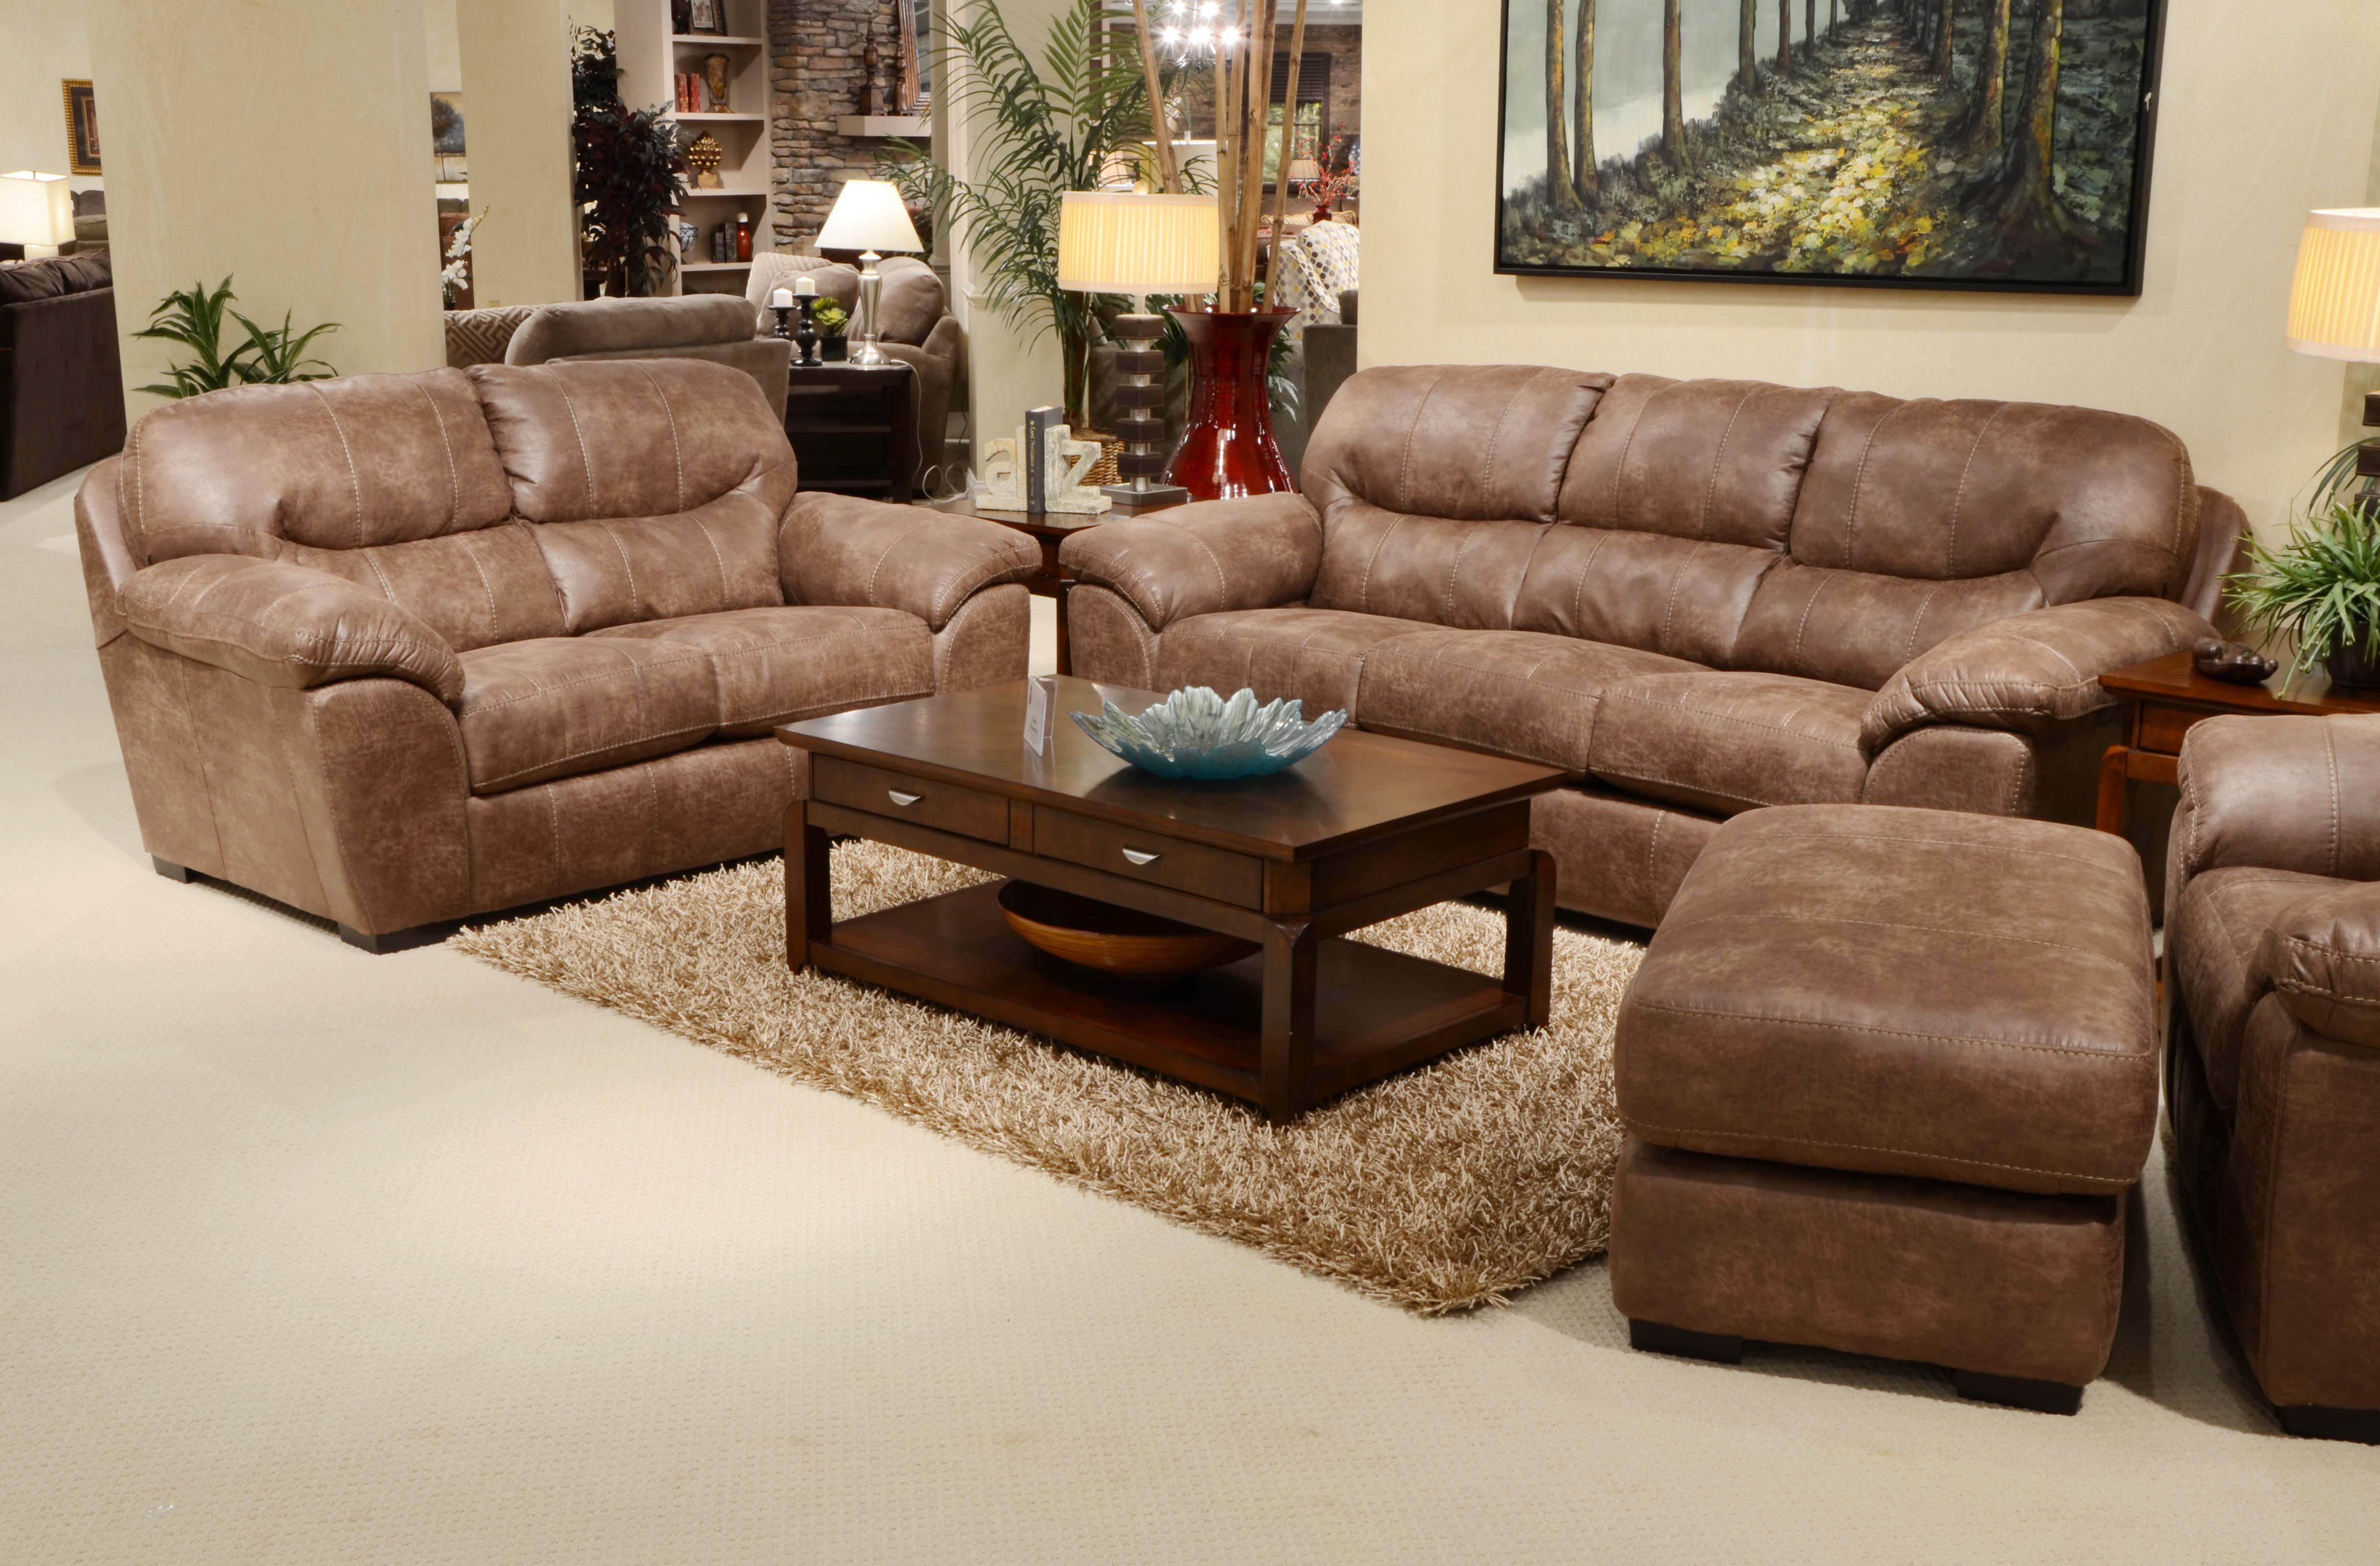 jackson suffolk sofa reviews old fashioned sleeper furniture stationary upholstery collection grant